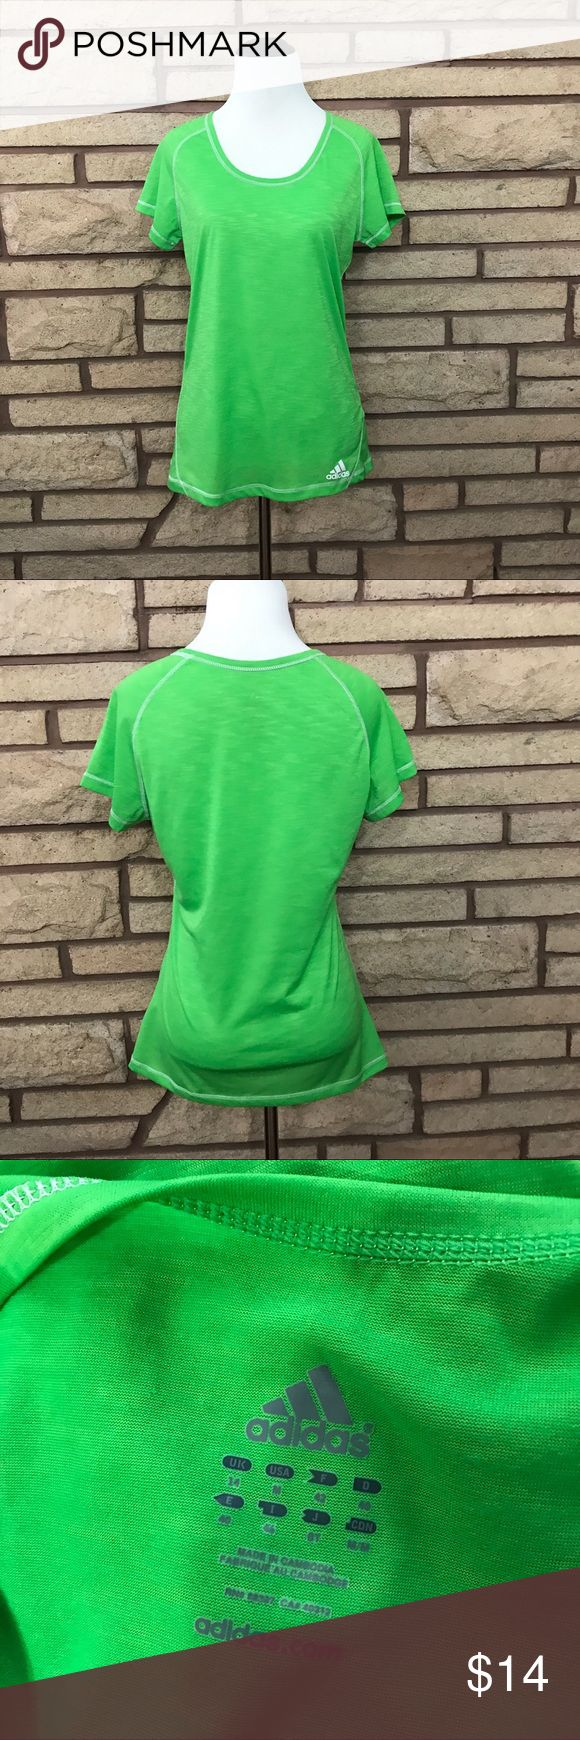 Adidas Workout Shirt 🌑Bright green light material   🌘In like new condition    🌗Material: 100% polyester  🌖Dimensions: 17in bust, 25in top to bottom  🌕Offers Welcome 🌔Fast shipping 🌓Sorry, no trades 🌒Bundle and save 30% off two or more items 🌑Free gift with every purchase Adidas Tops